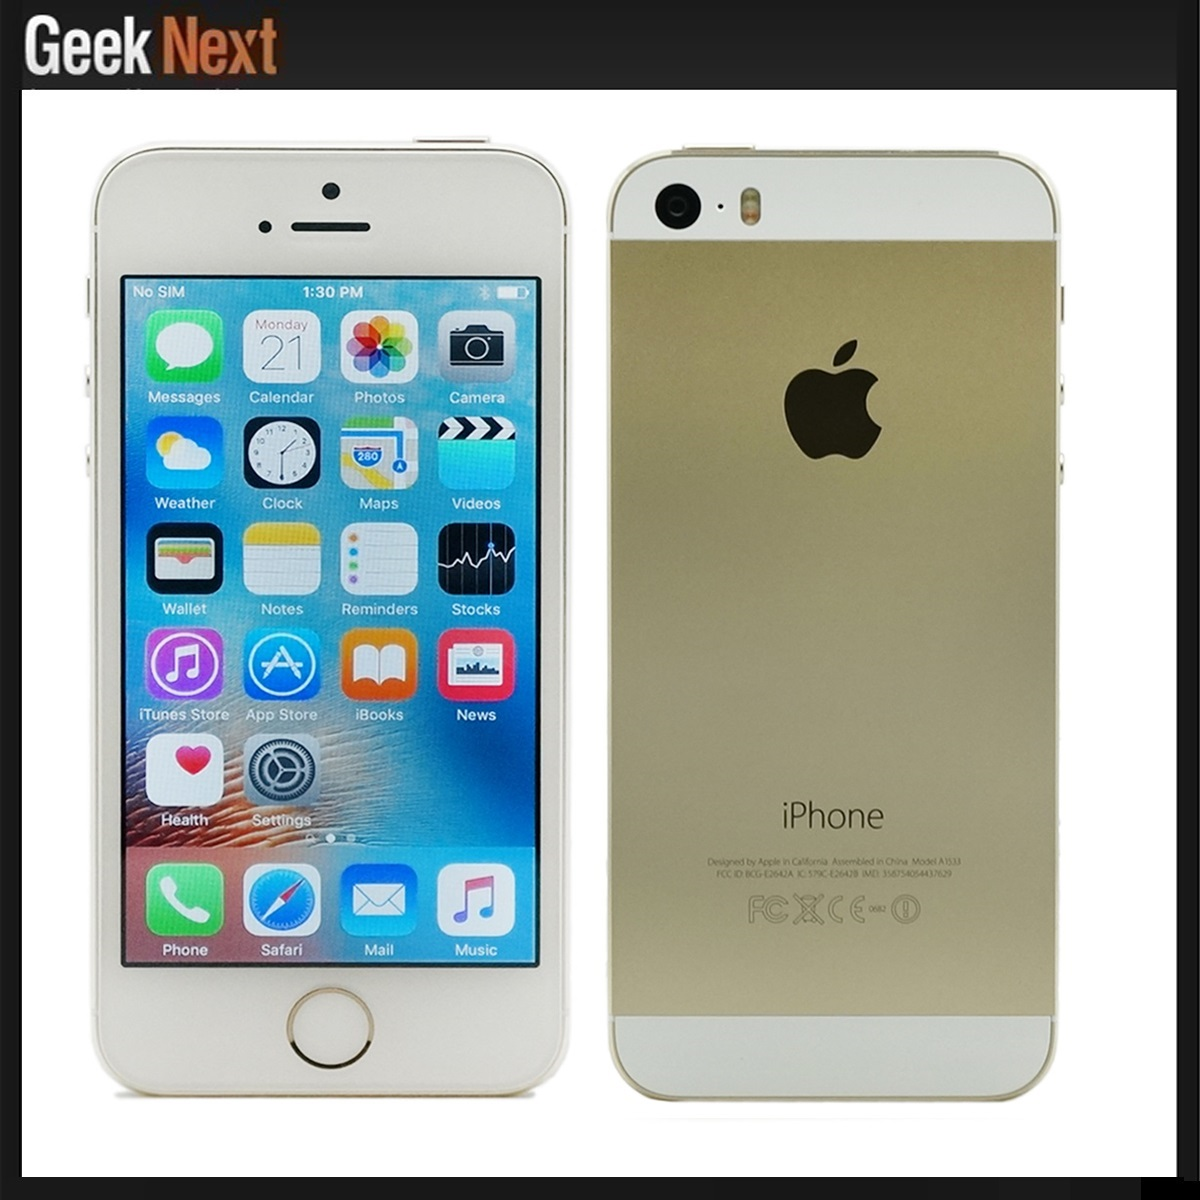 iphone 5s unlocked apple iphone 5 5s 5c se at amp t t mobile verizon unlocked gsm 1045